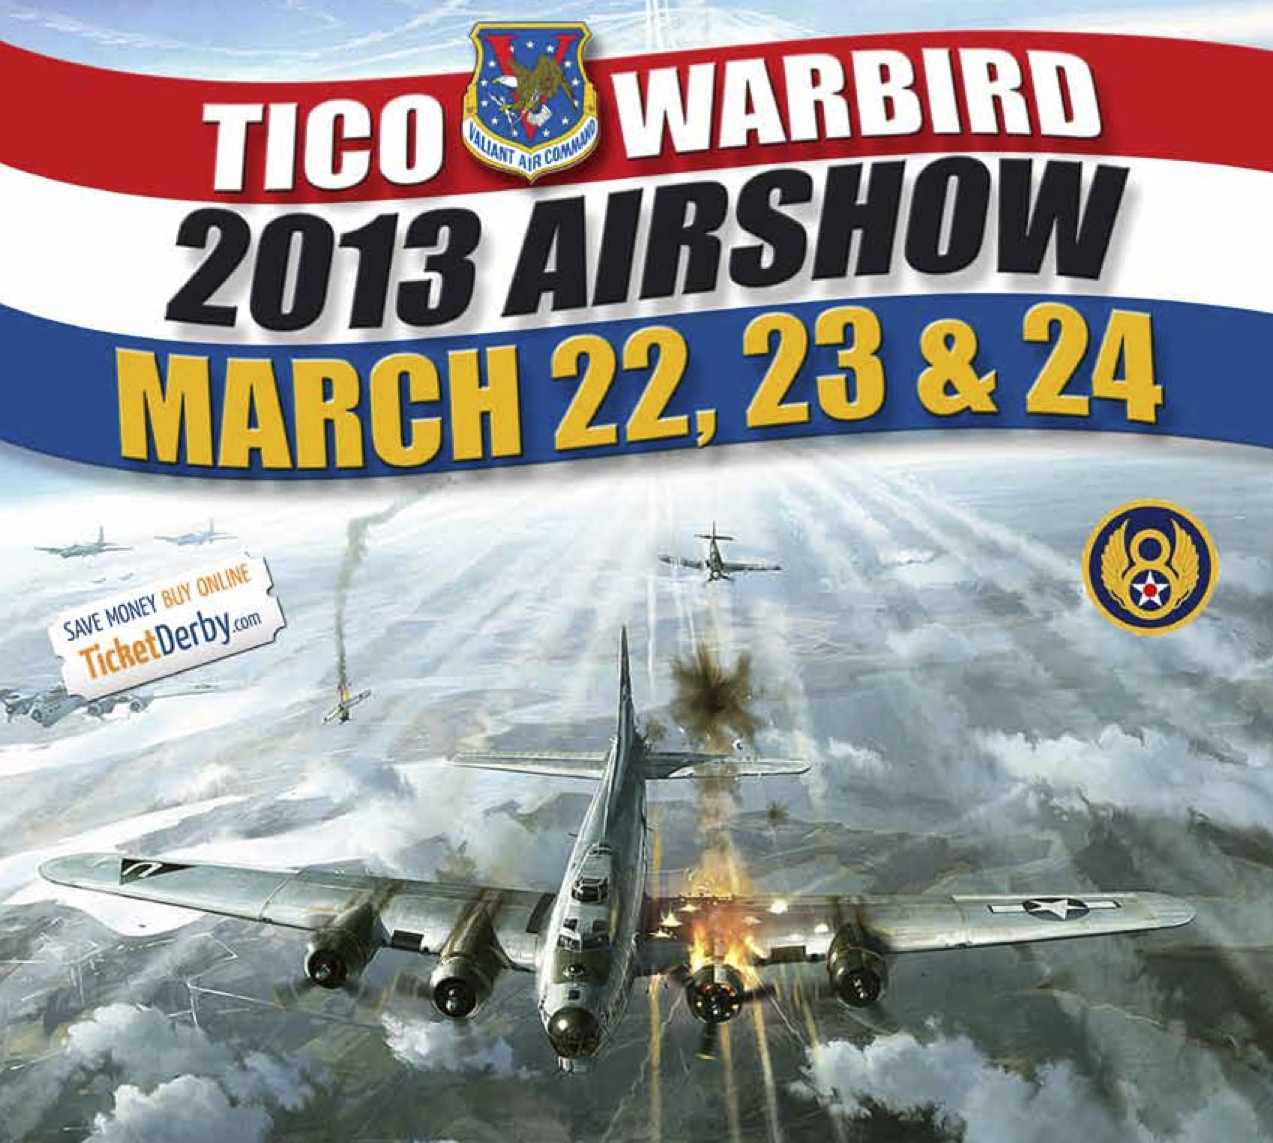 Special Package Available for TiCo Warbird AirShow